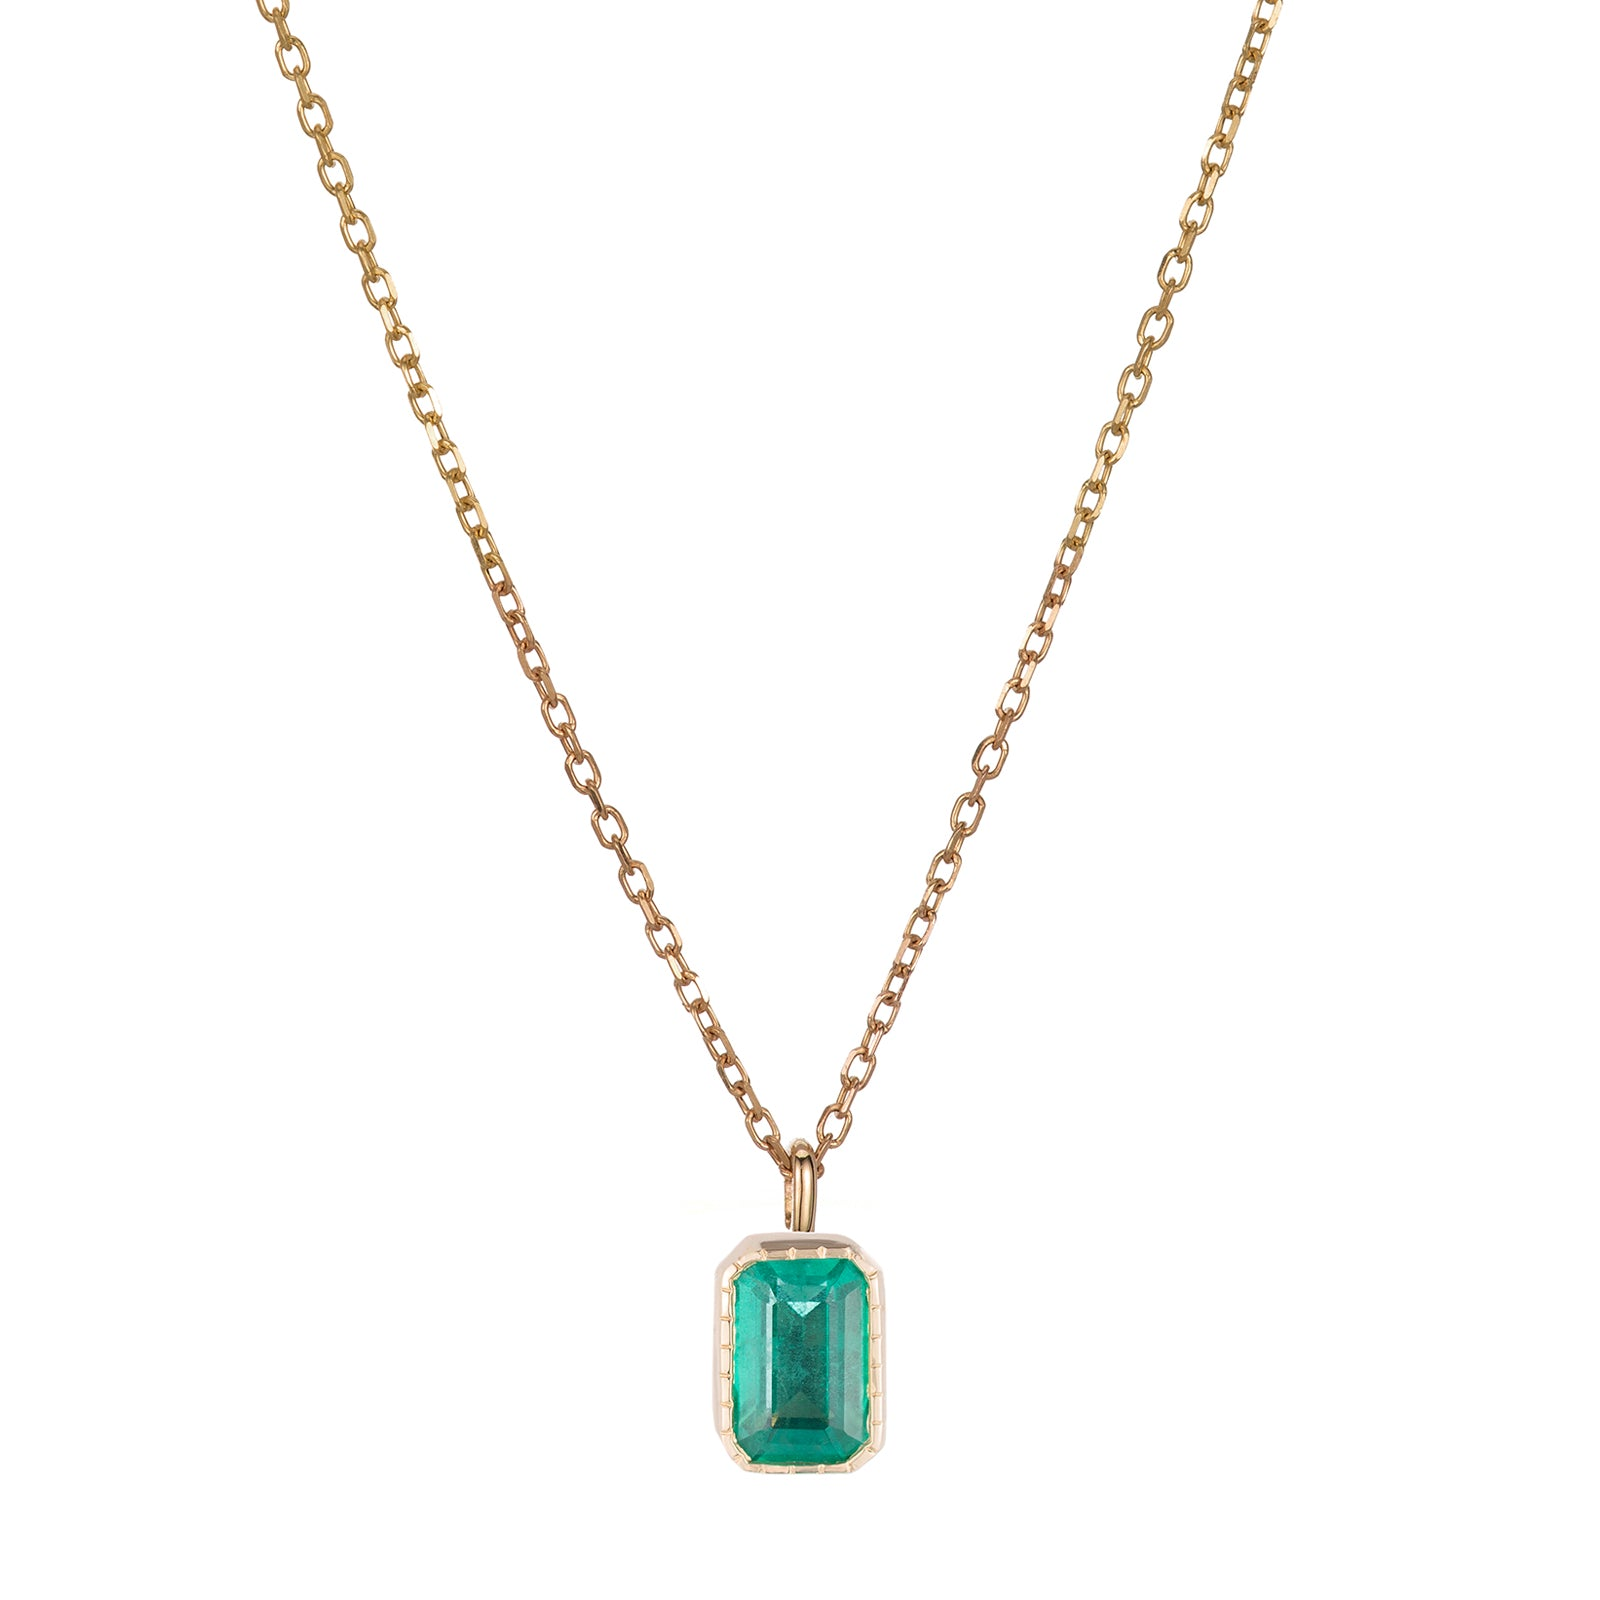 Jennie Kwon Emerald Cut Wisp Necklace - Emerald - Necklaces - Broken English Jewelry